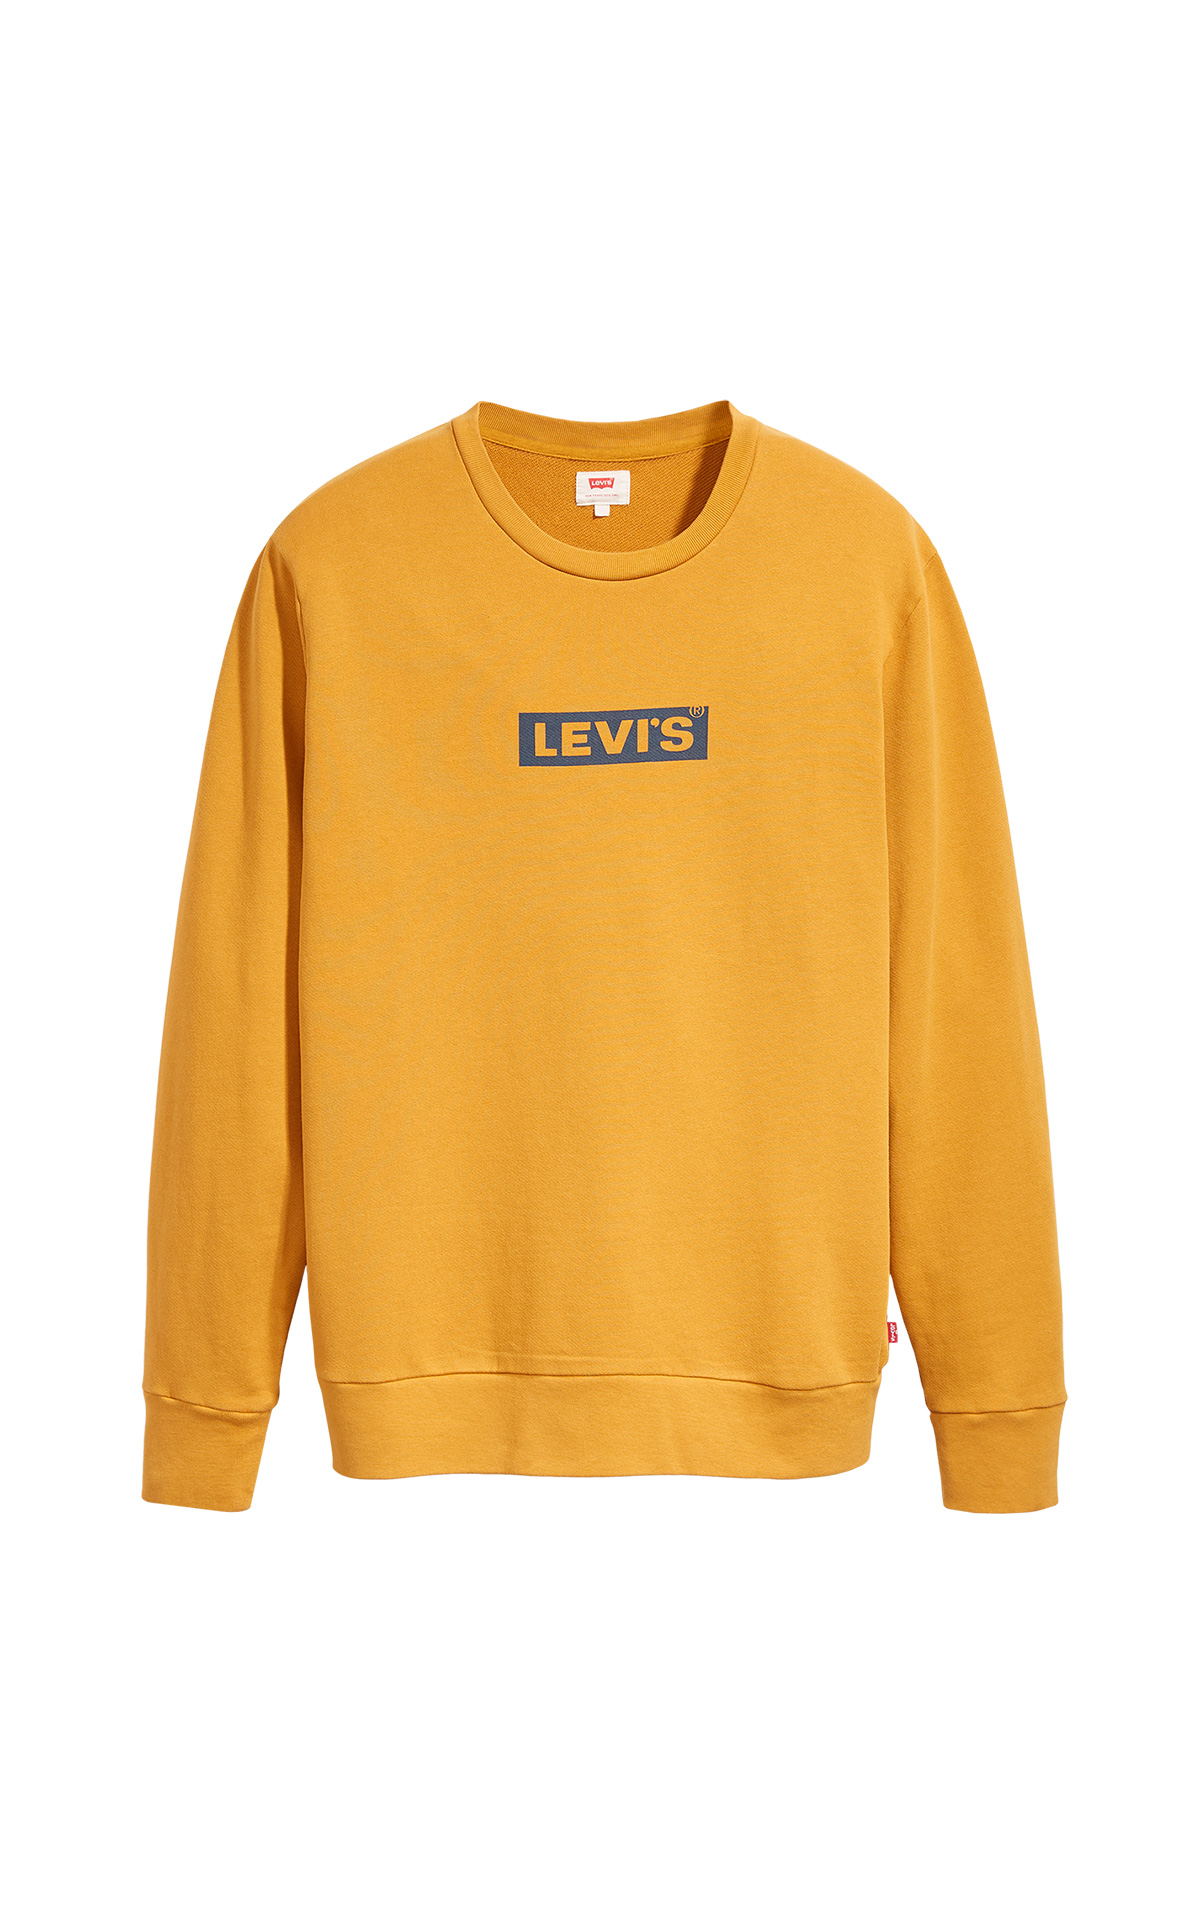 Levi's Harvest gold box crew